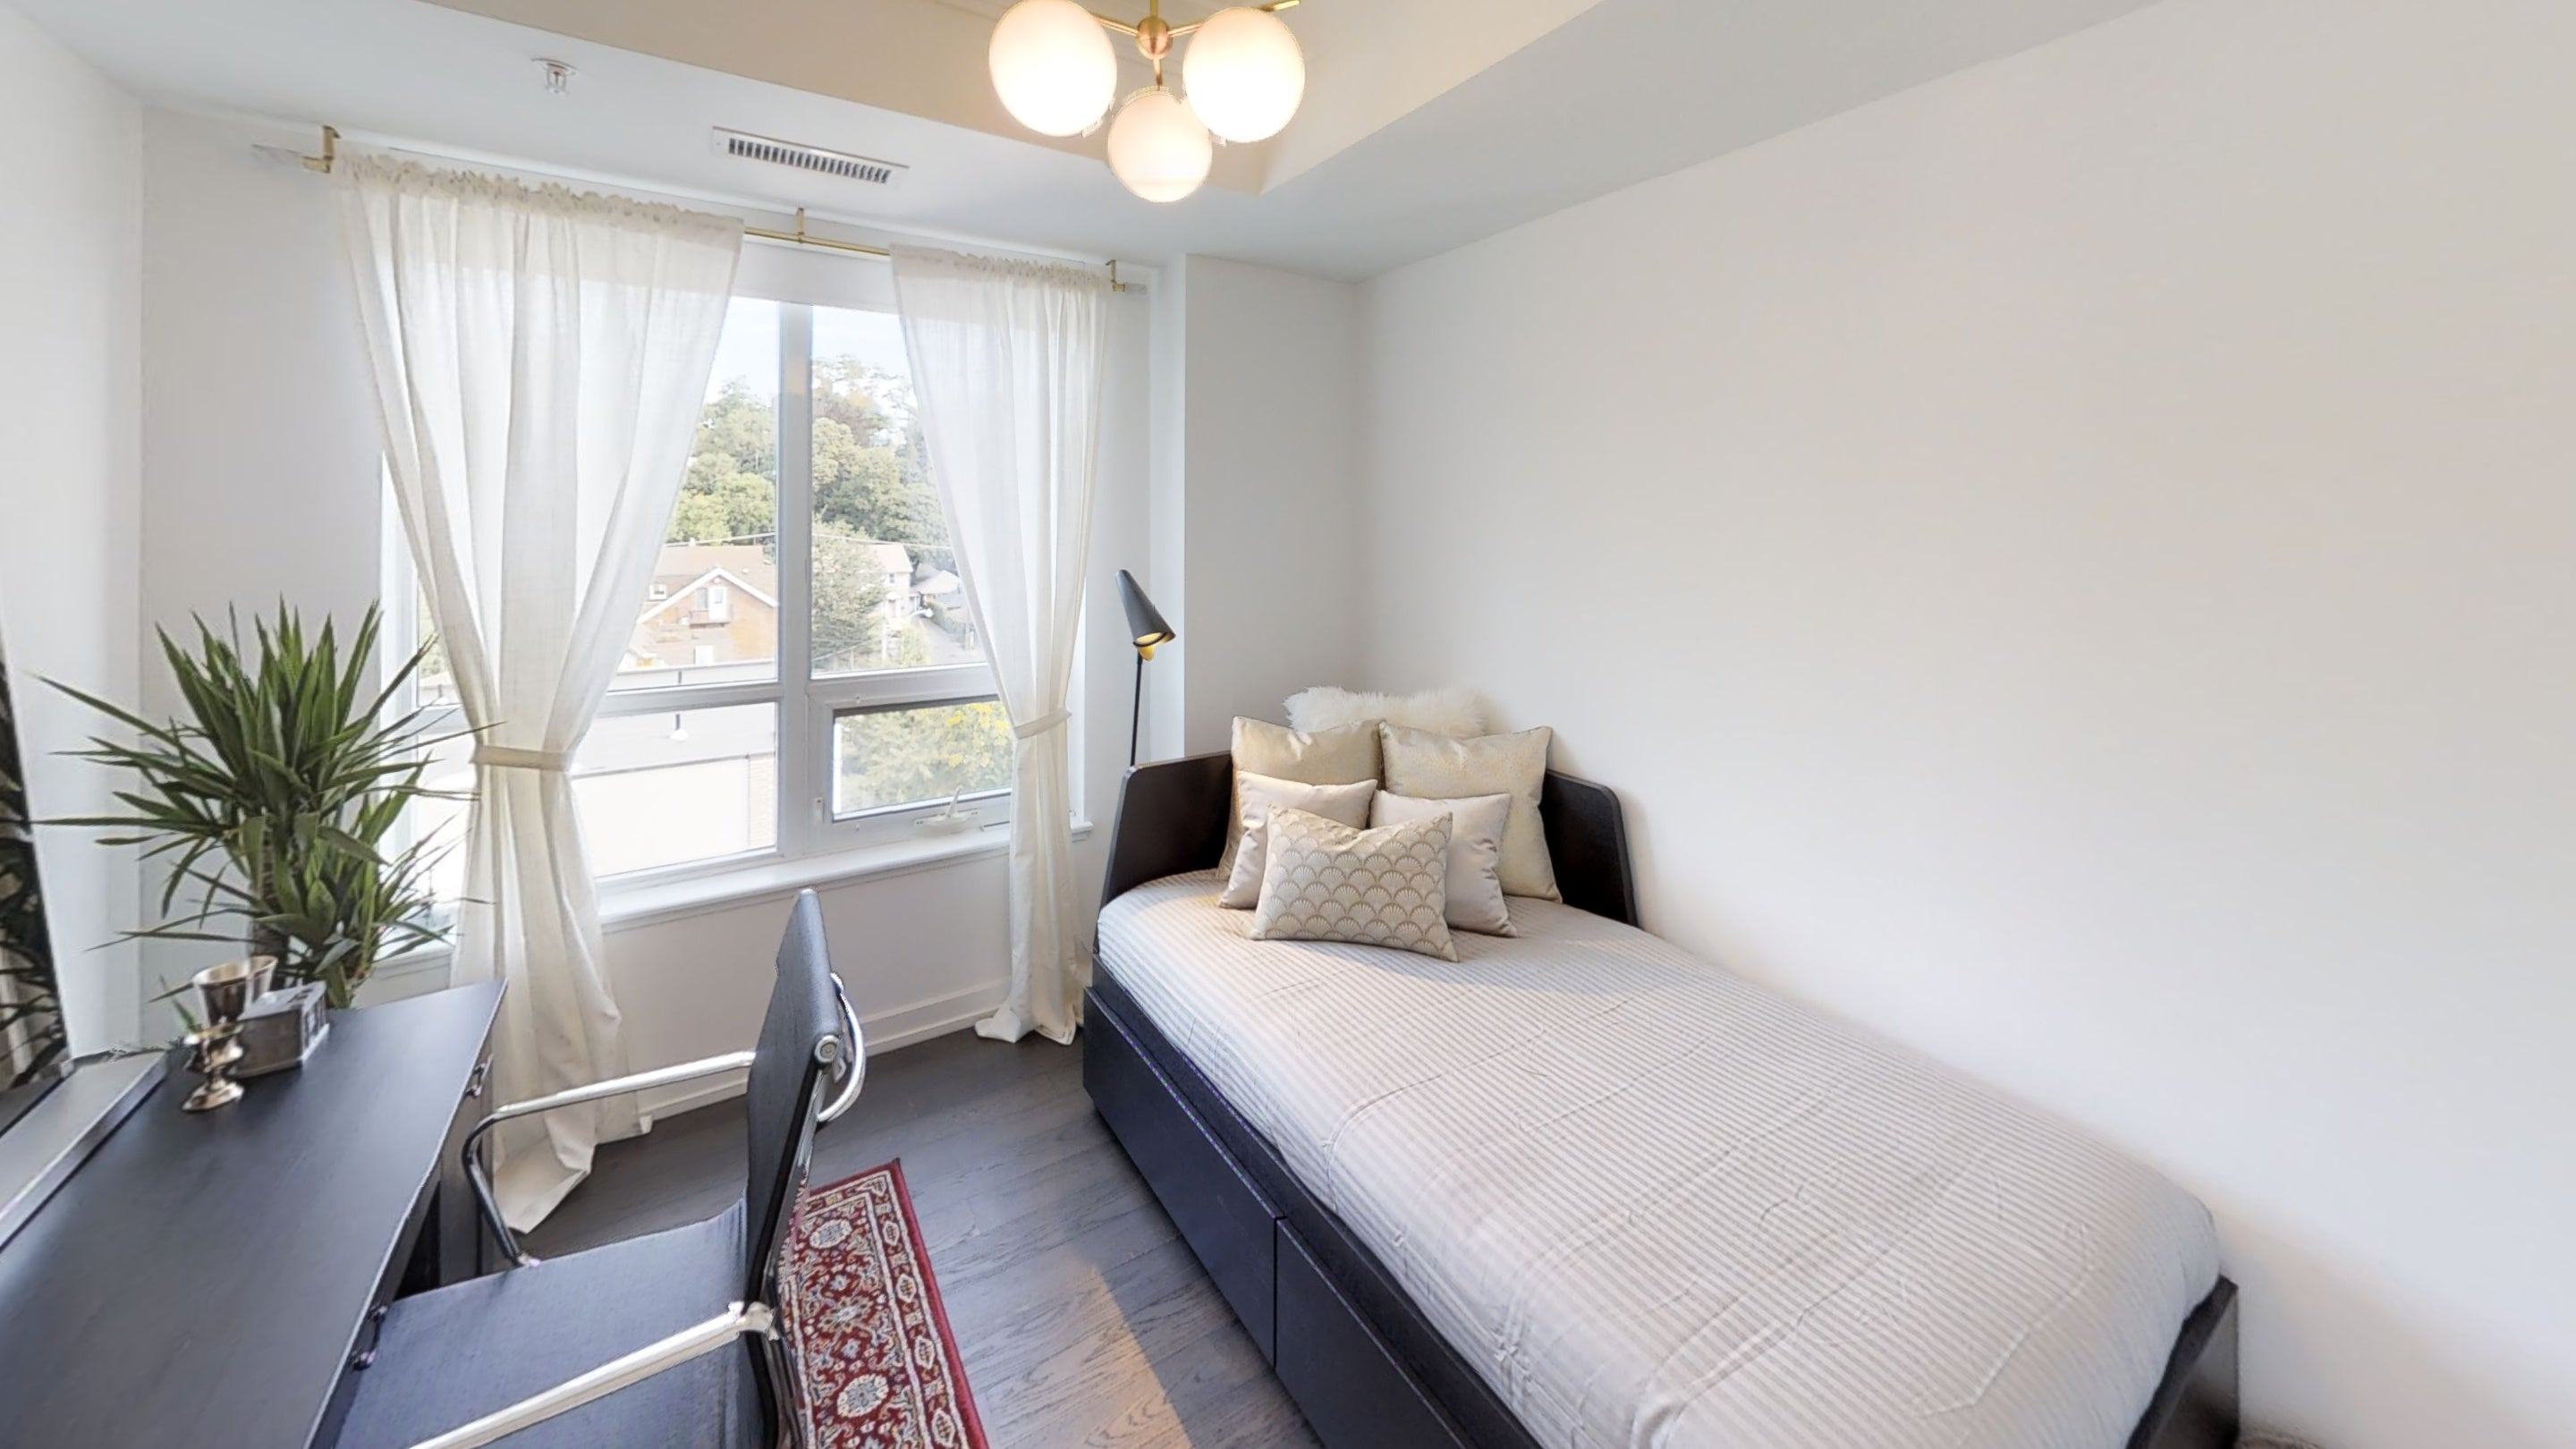 Wondrous Extended Stay And Furnished Apartments In Toronto Interior Design Ideas Clesiryabchikinfo